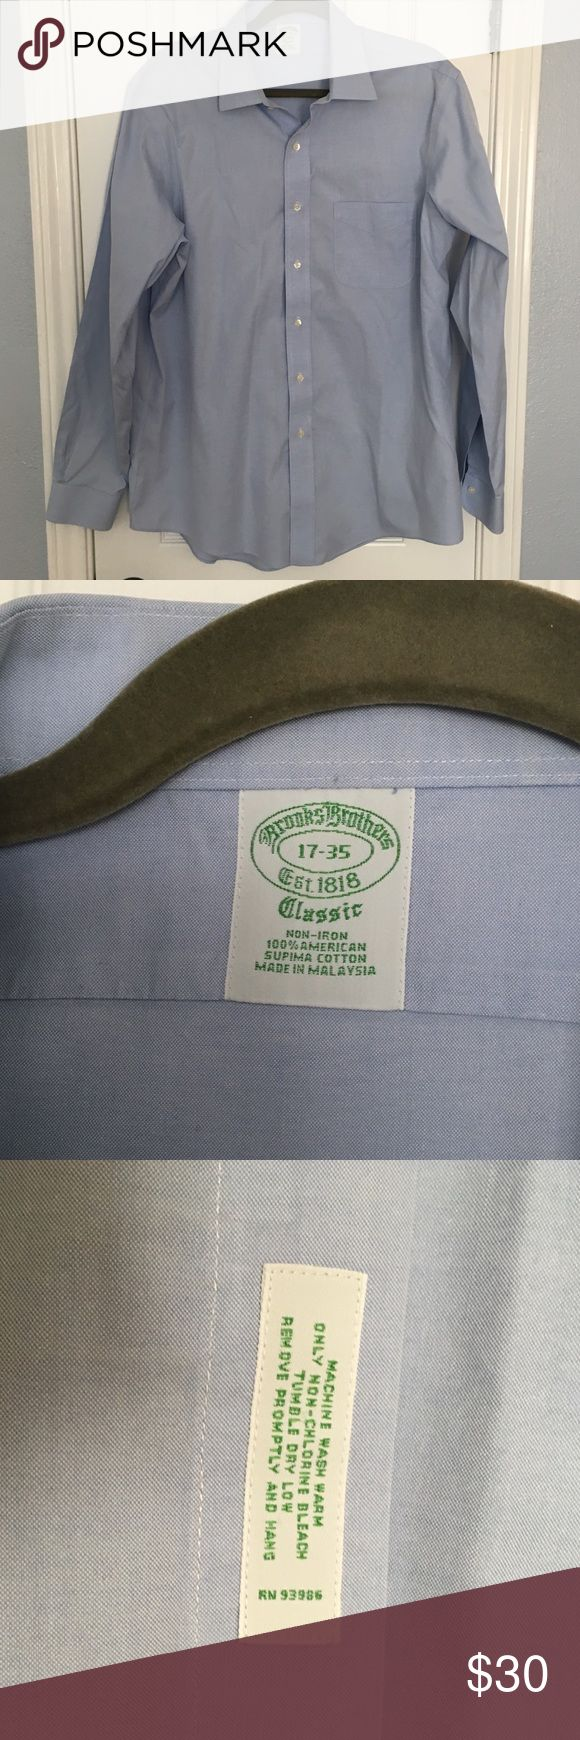 Brooks Brothers Non Iron Dress Shirt Slim fit size 17-35 Brooks Brothers Non Iron shirts.   Slight wear on inside of collar, not noticeable when wearing. Good condition. Brooks Brothers Shirts Dress Shirts